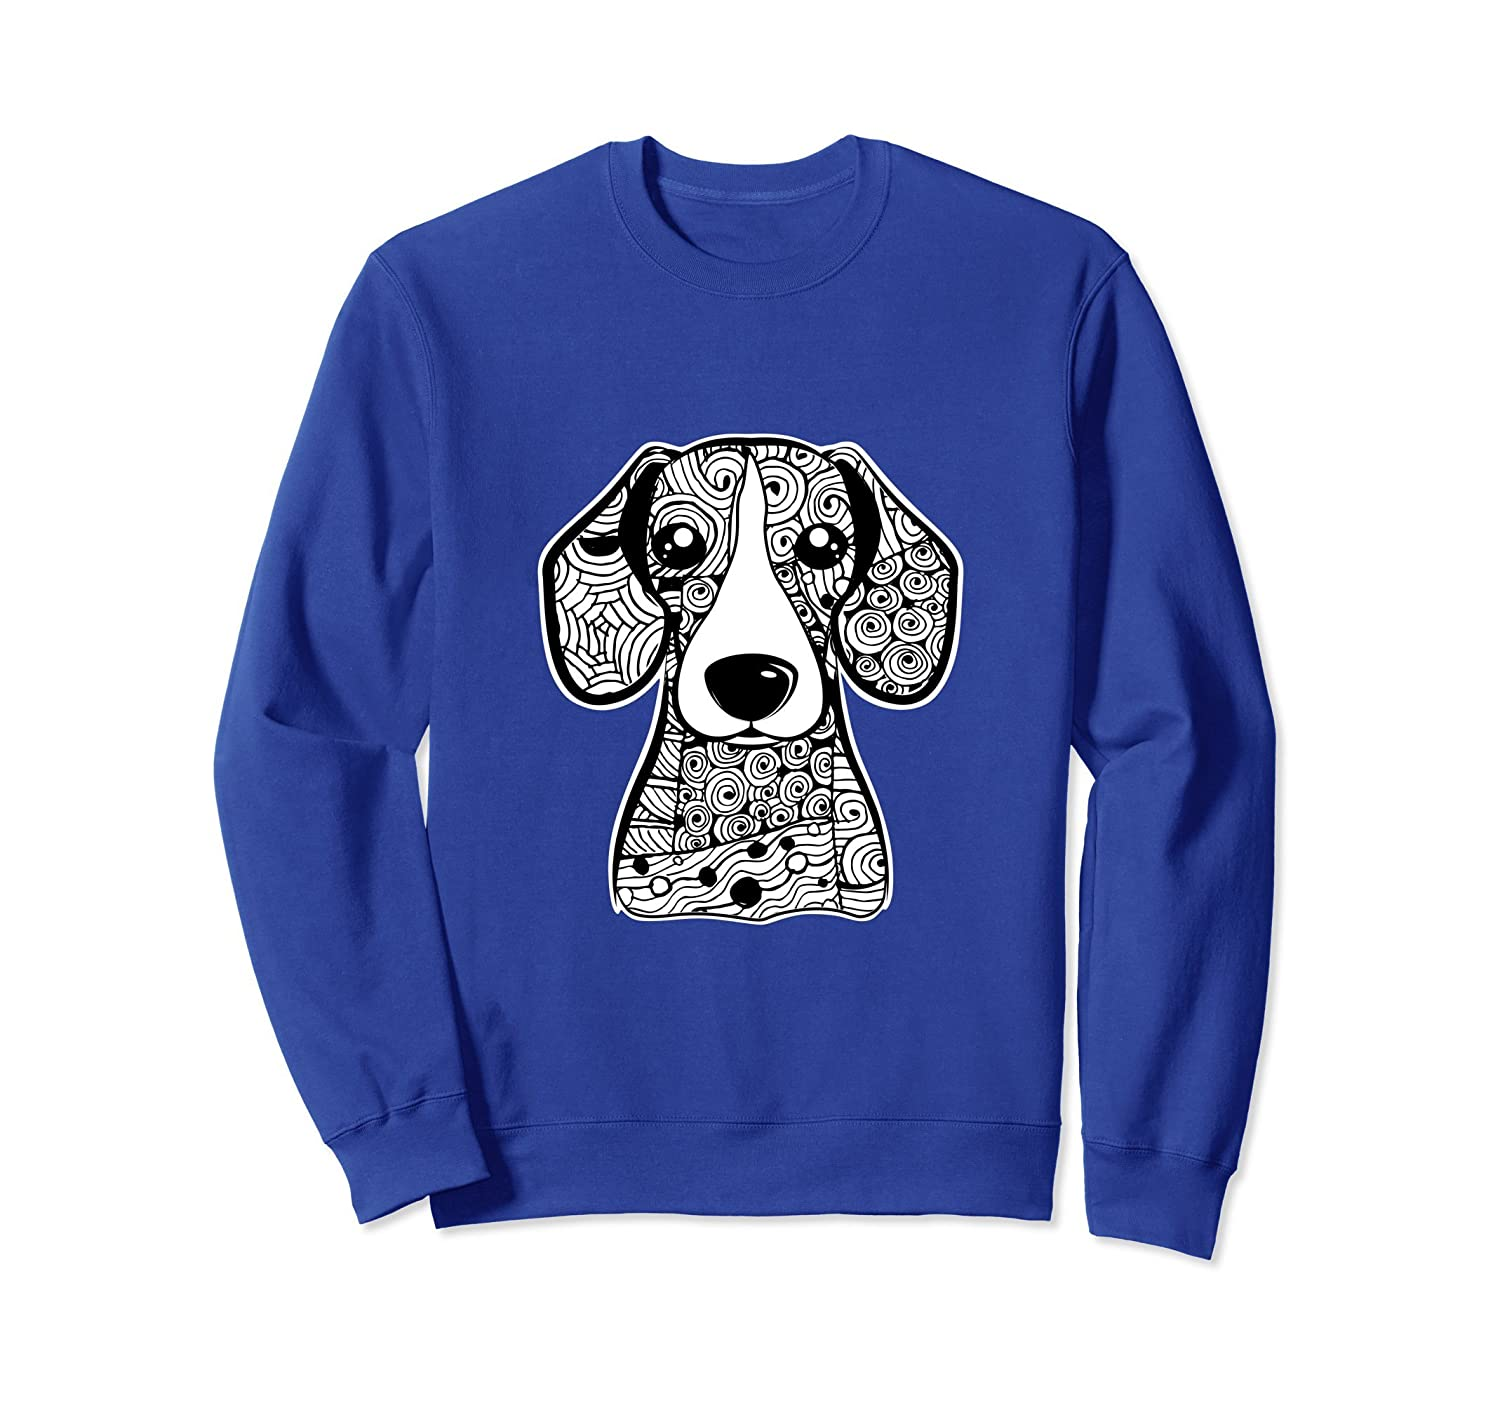 Beagle Face Graphic Art Sweatshirt Gift for Dog Mom and Dad-AZP